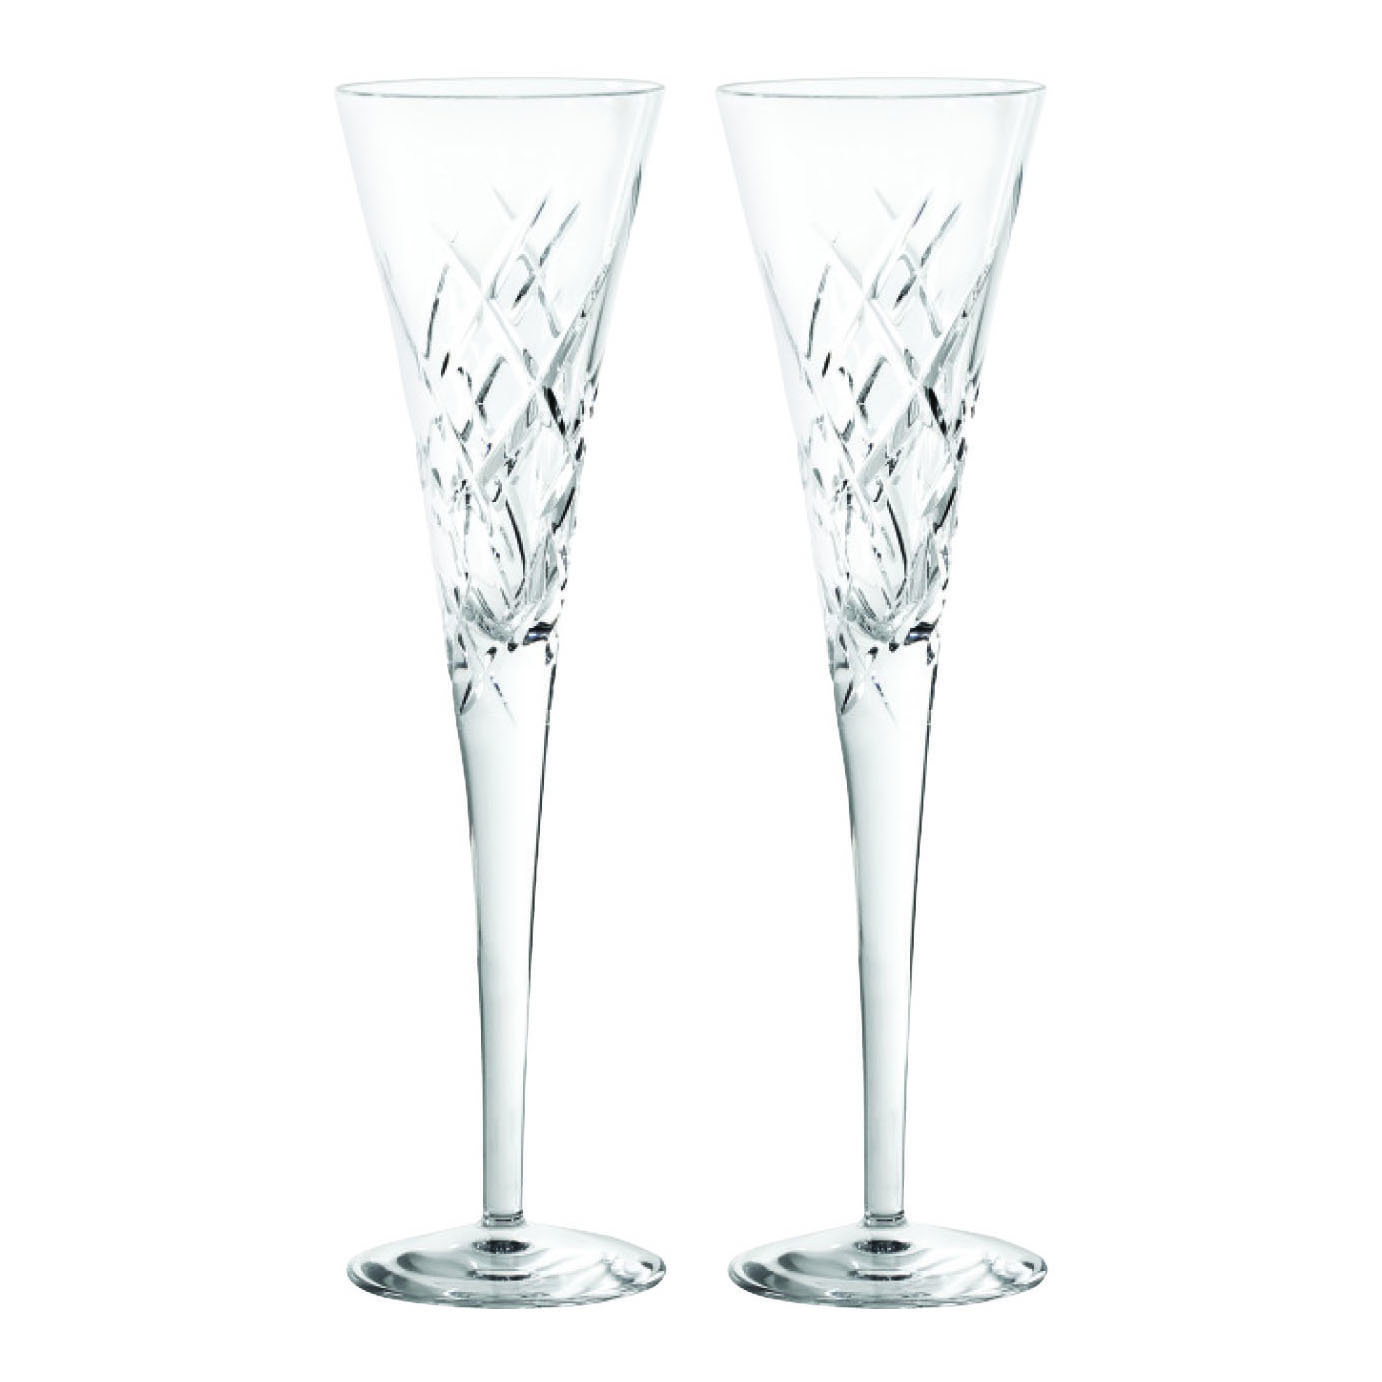 Take Today Slowly Reasons To Slow Down Sometimes also 9 More Cheap Easy Diy Gift Ideas For Valentines Day 0150817 furthermore Baccarat Ch agne Cooler Clear And Silver Harcourt 1893681 Xml 28361 30290 30295 179597 additionally Cousin Quotes in addition Border Wedding Invitation. on valentines day gifts for him